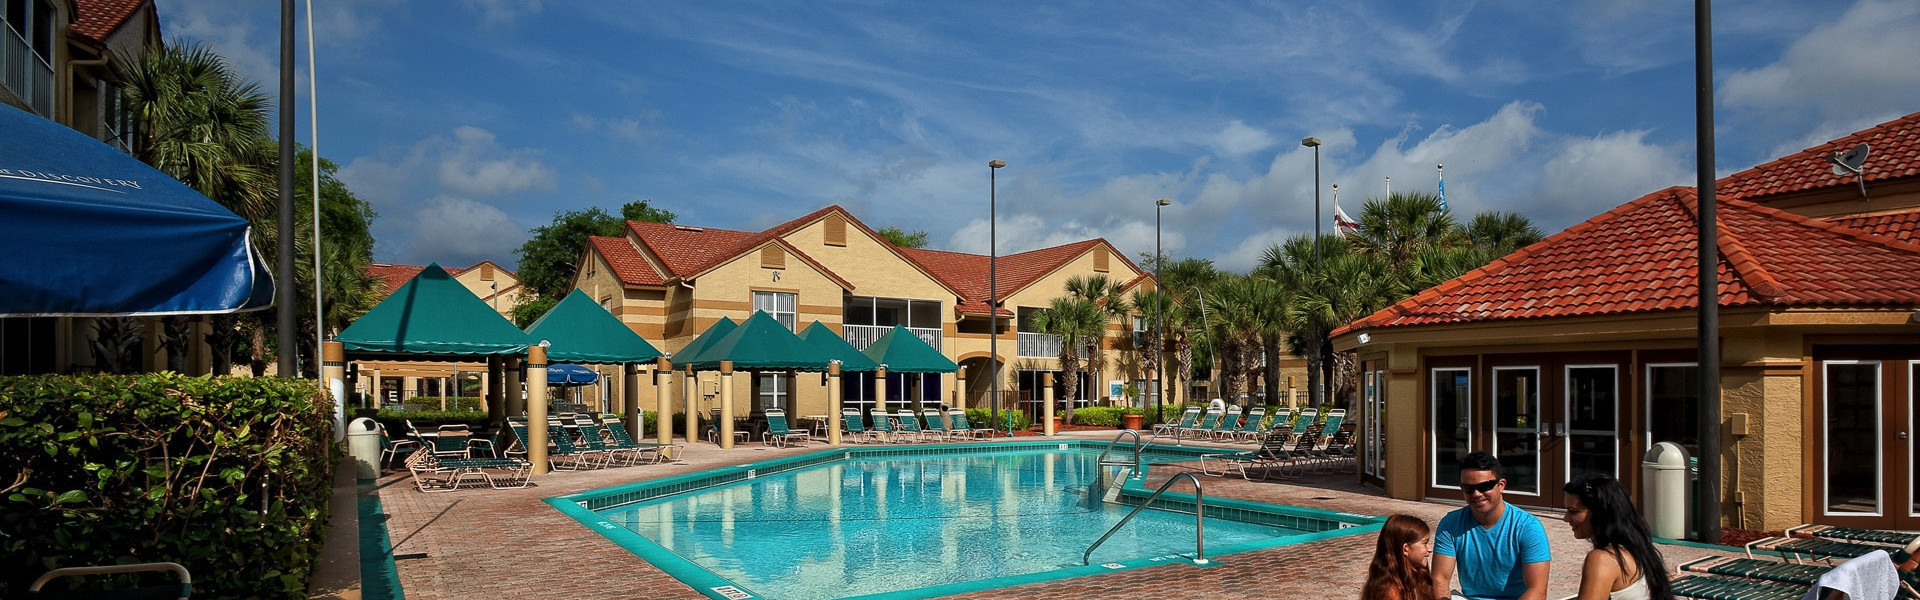 Overview of Lake Buena Vista resort near Orlando's theme parks | Heated Outdoor Pool